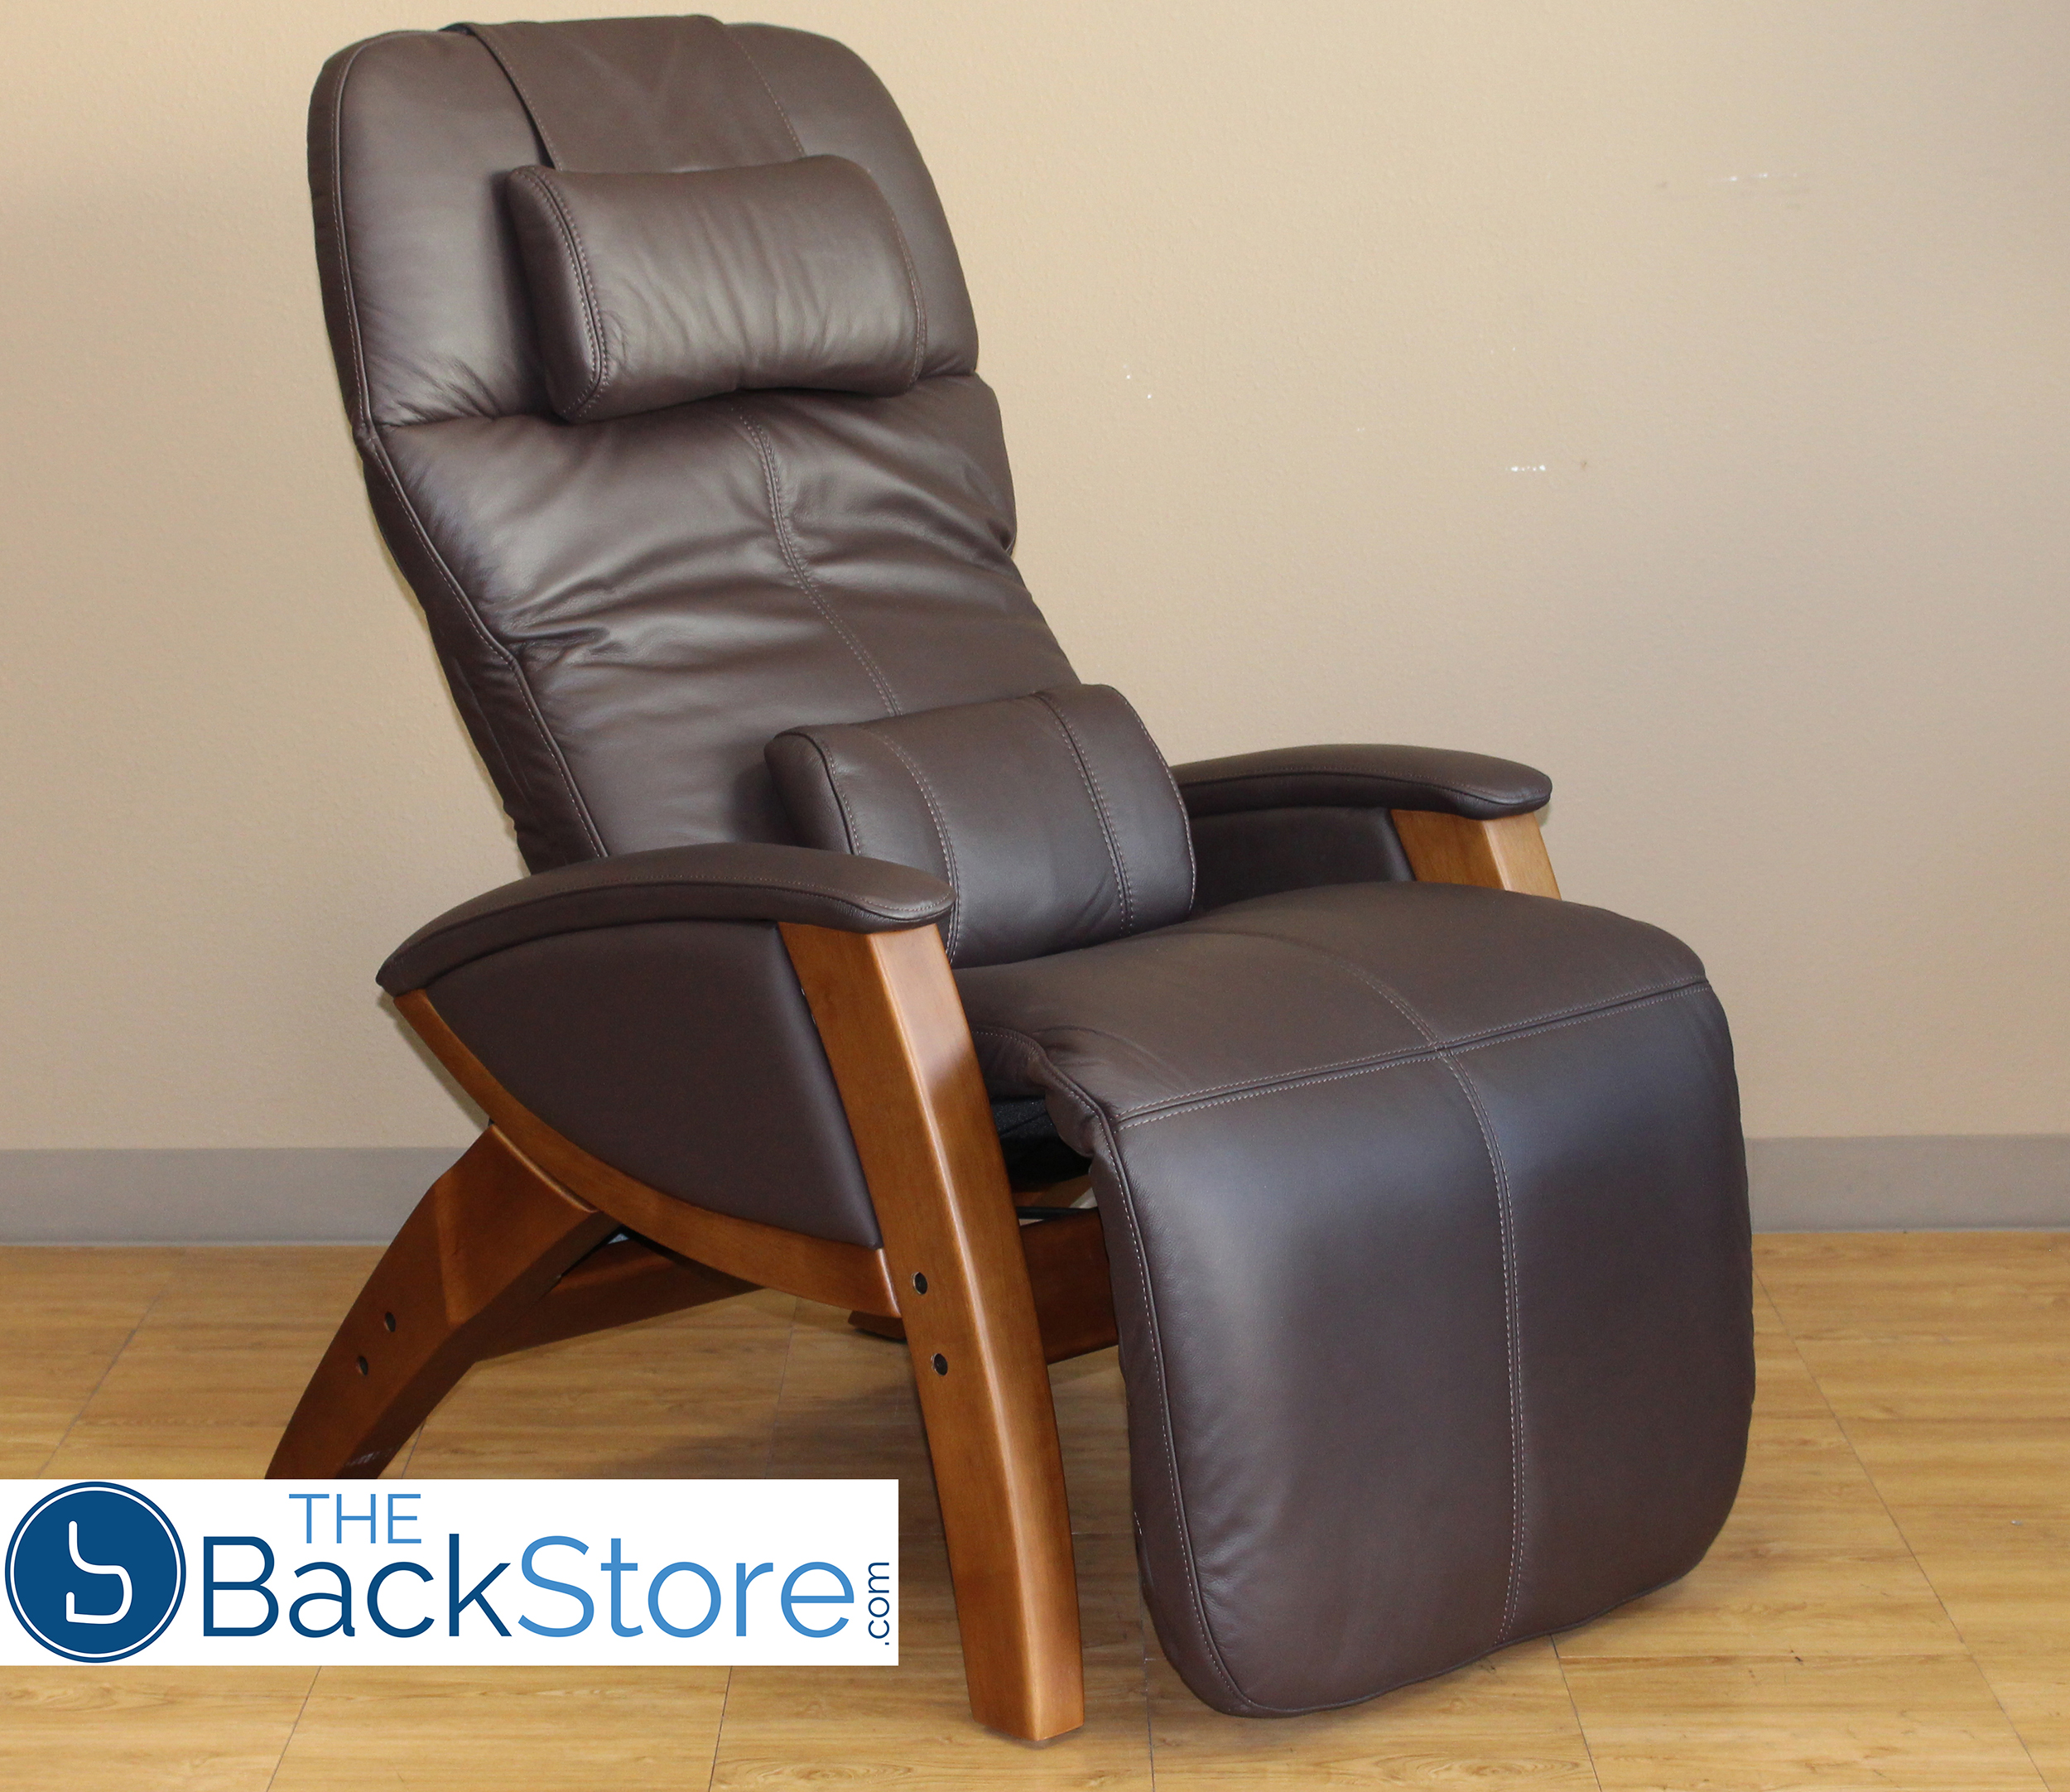 CHOCOLATE LEATHER   HONEY WOOD BASE Svago SV400 Lusso Chair Zero Gravity  Ivory Leather Honey Wood Recliner